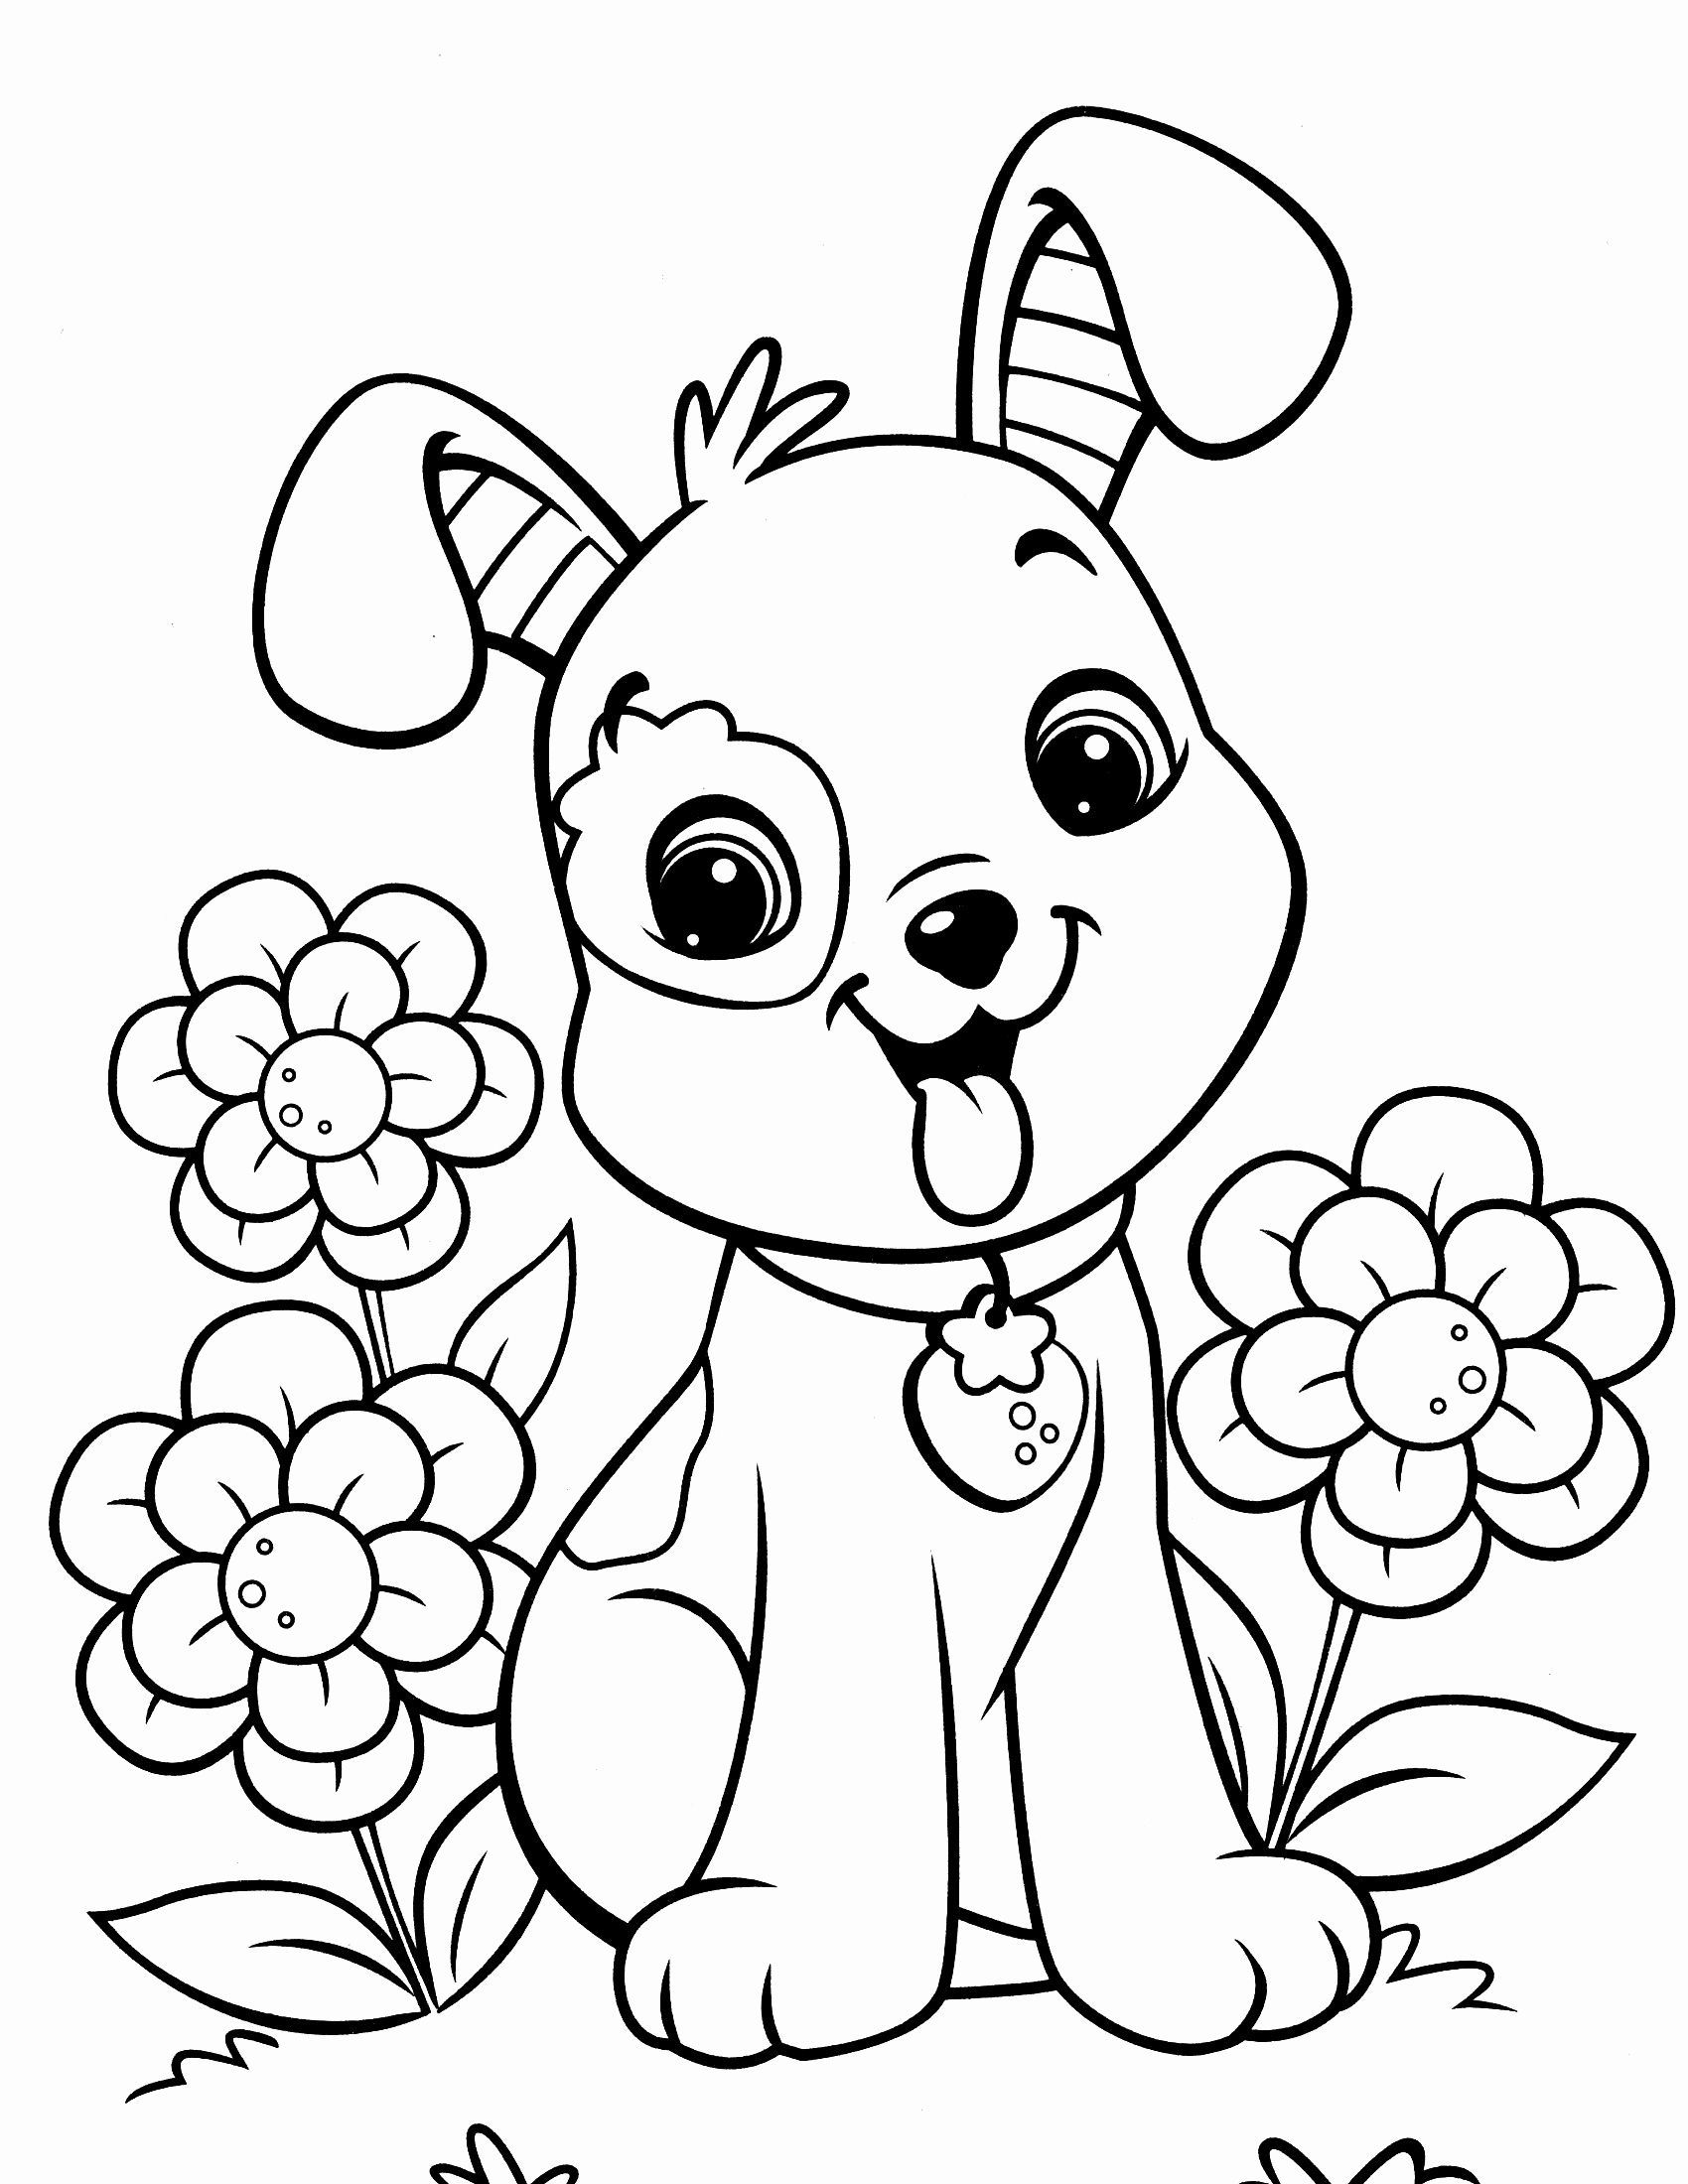 Coloring Pages Christmas Printable Free Beautiful Christmas Puppy Coloring Sheets Unique Christmas E Puppy Coloring Pages Dog Coloring Page Cute Coloring Pages